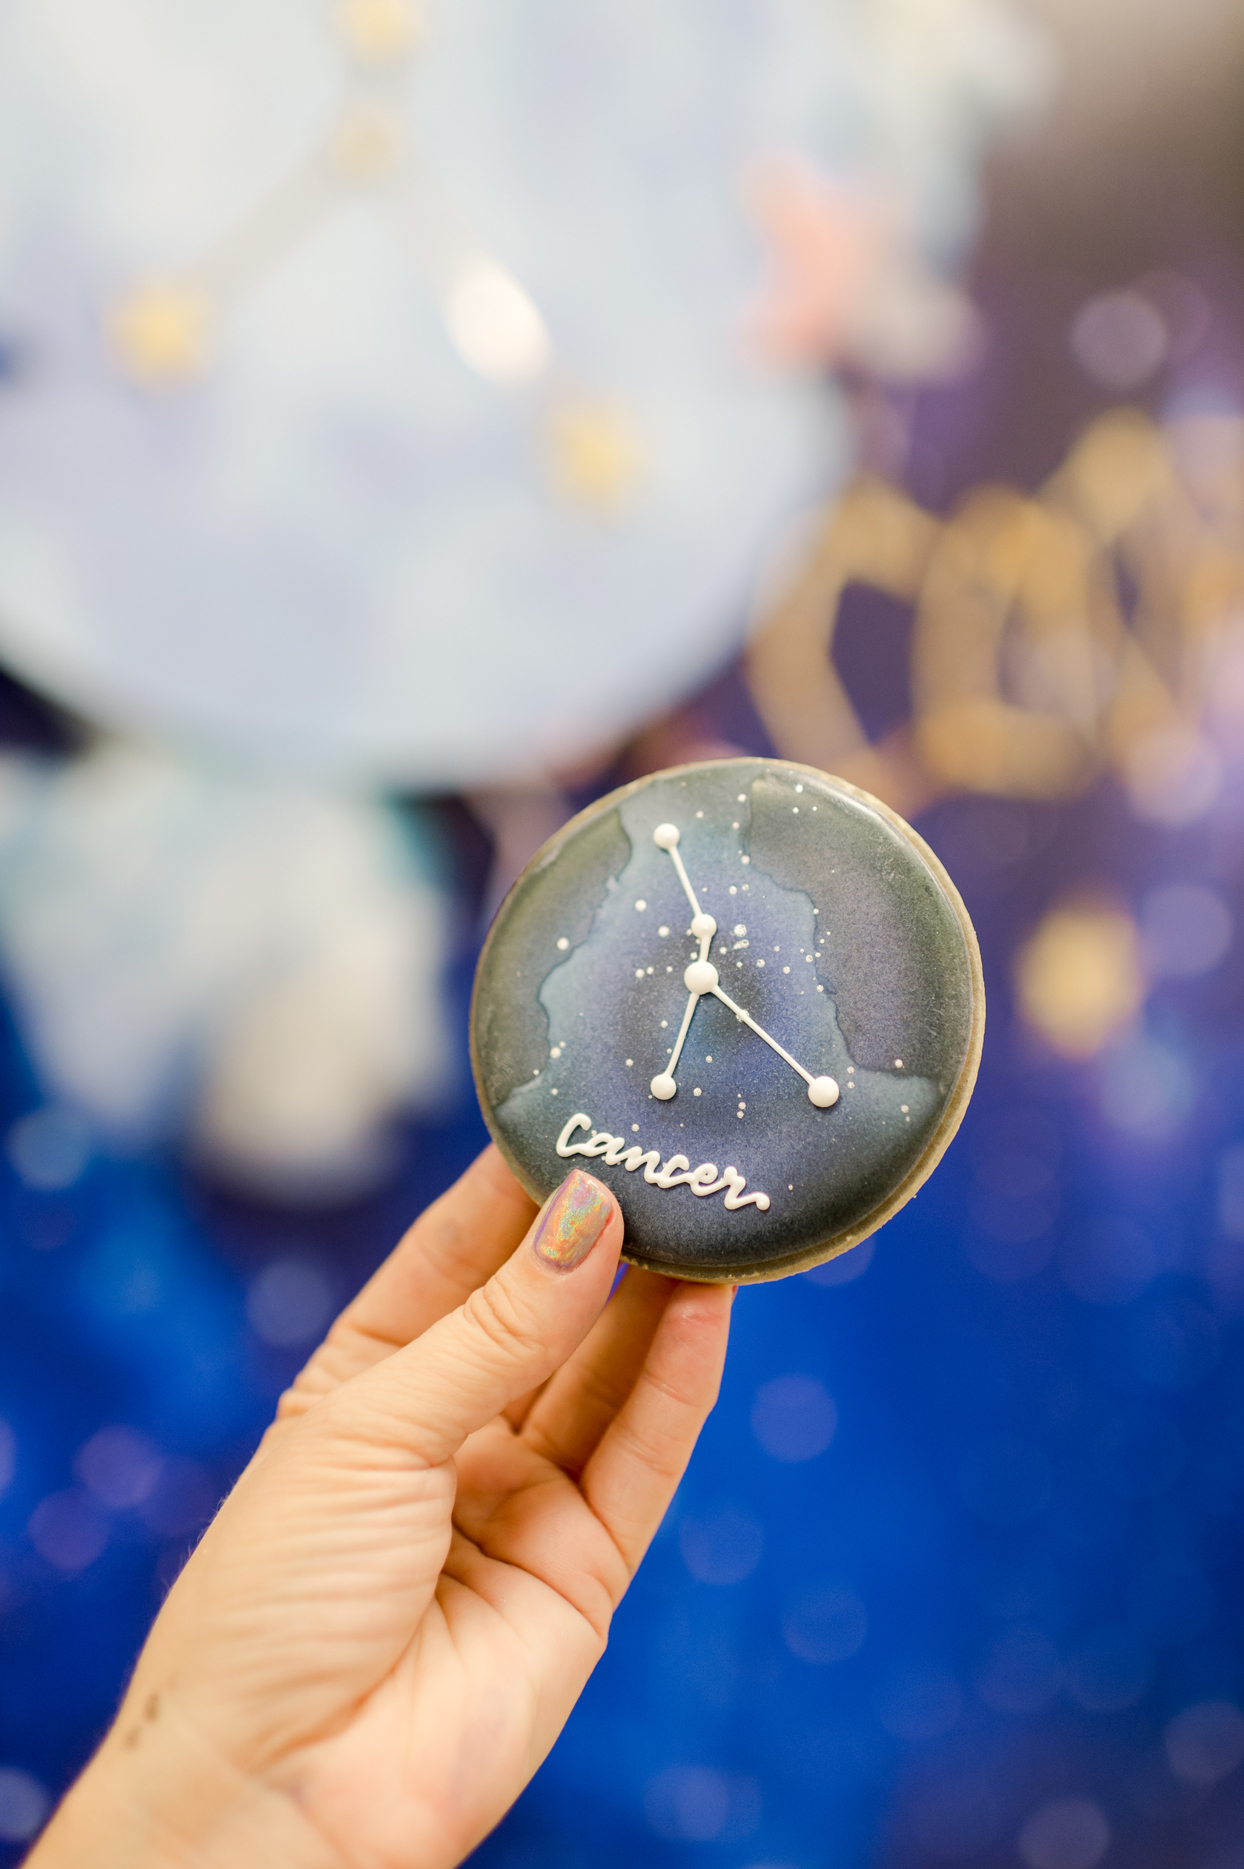 person holding cancer astrology constellation star design on cooking